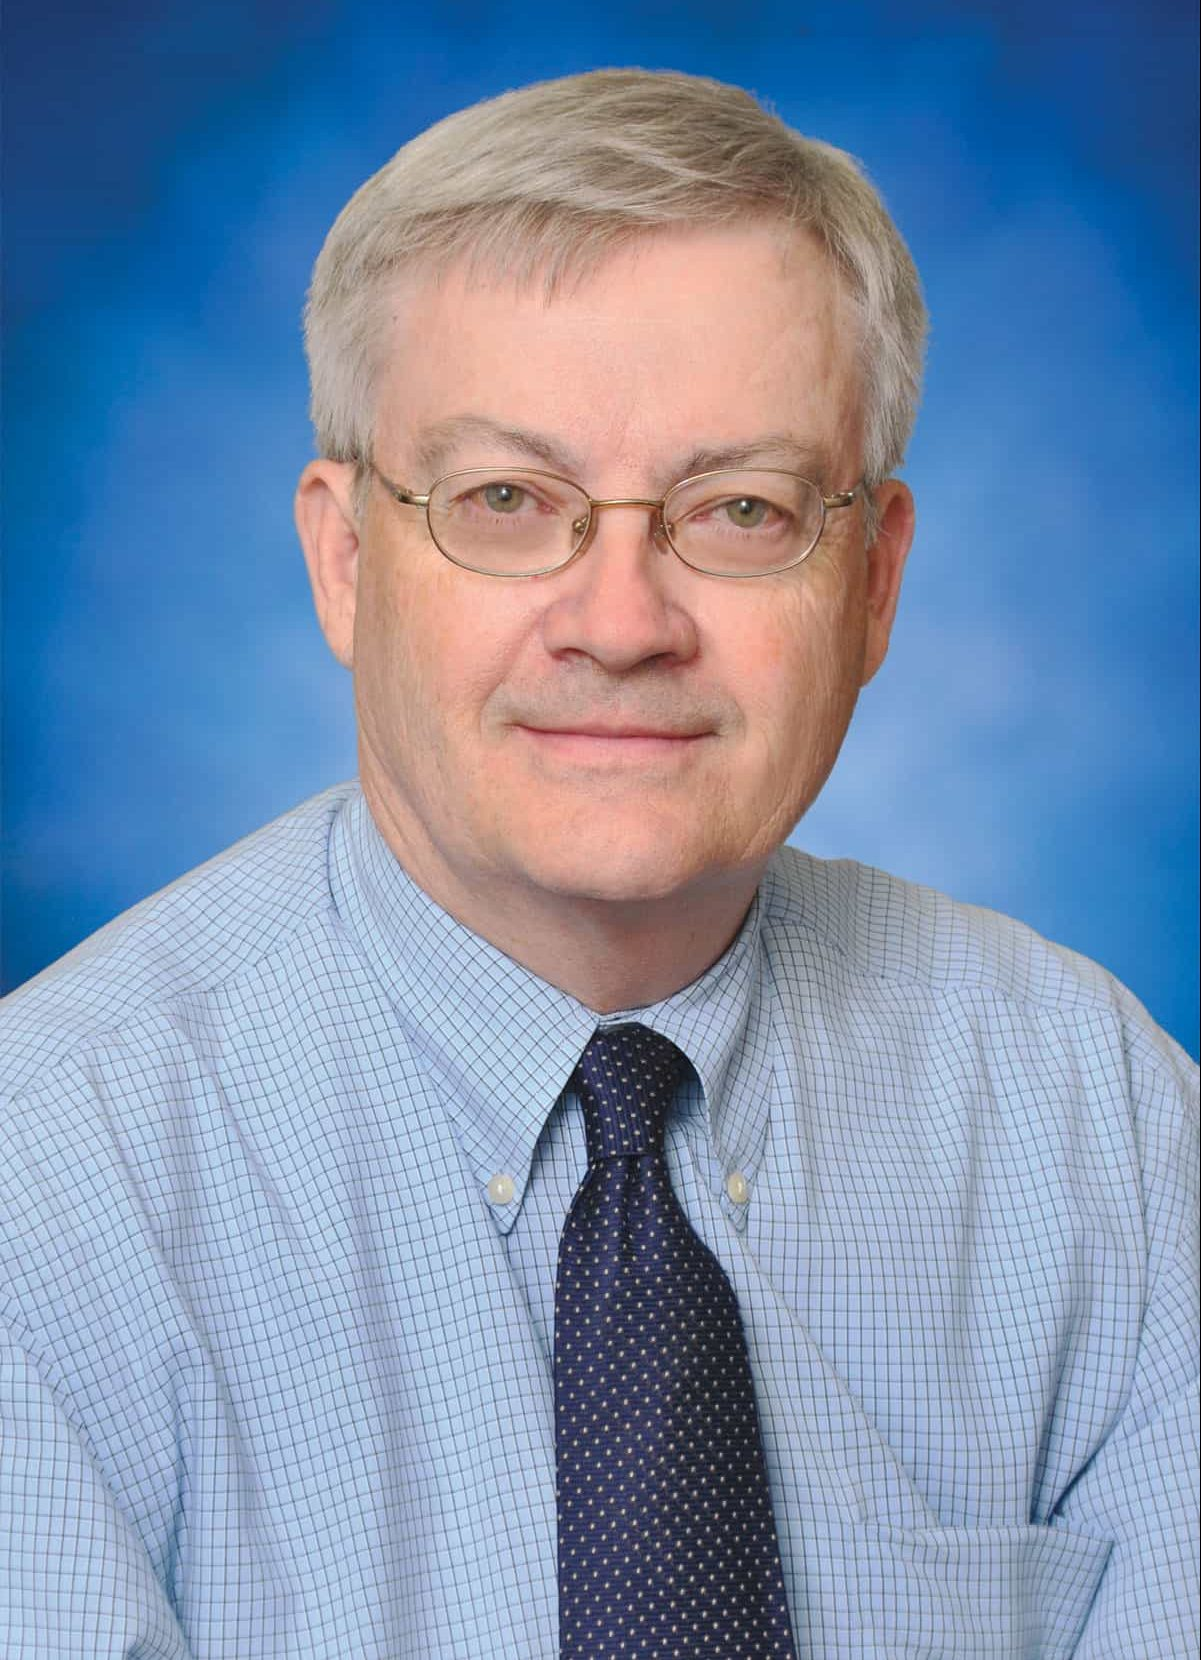 Joseph C. Dwyer, MD, FACC